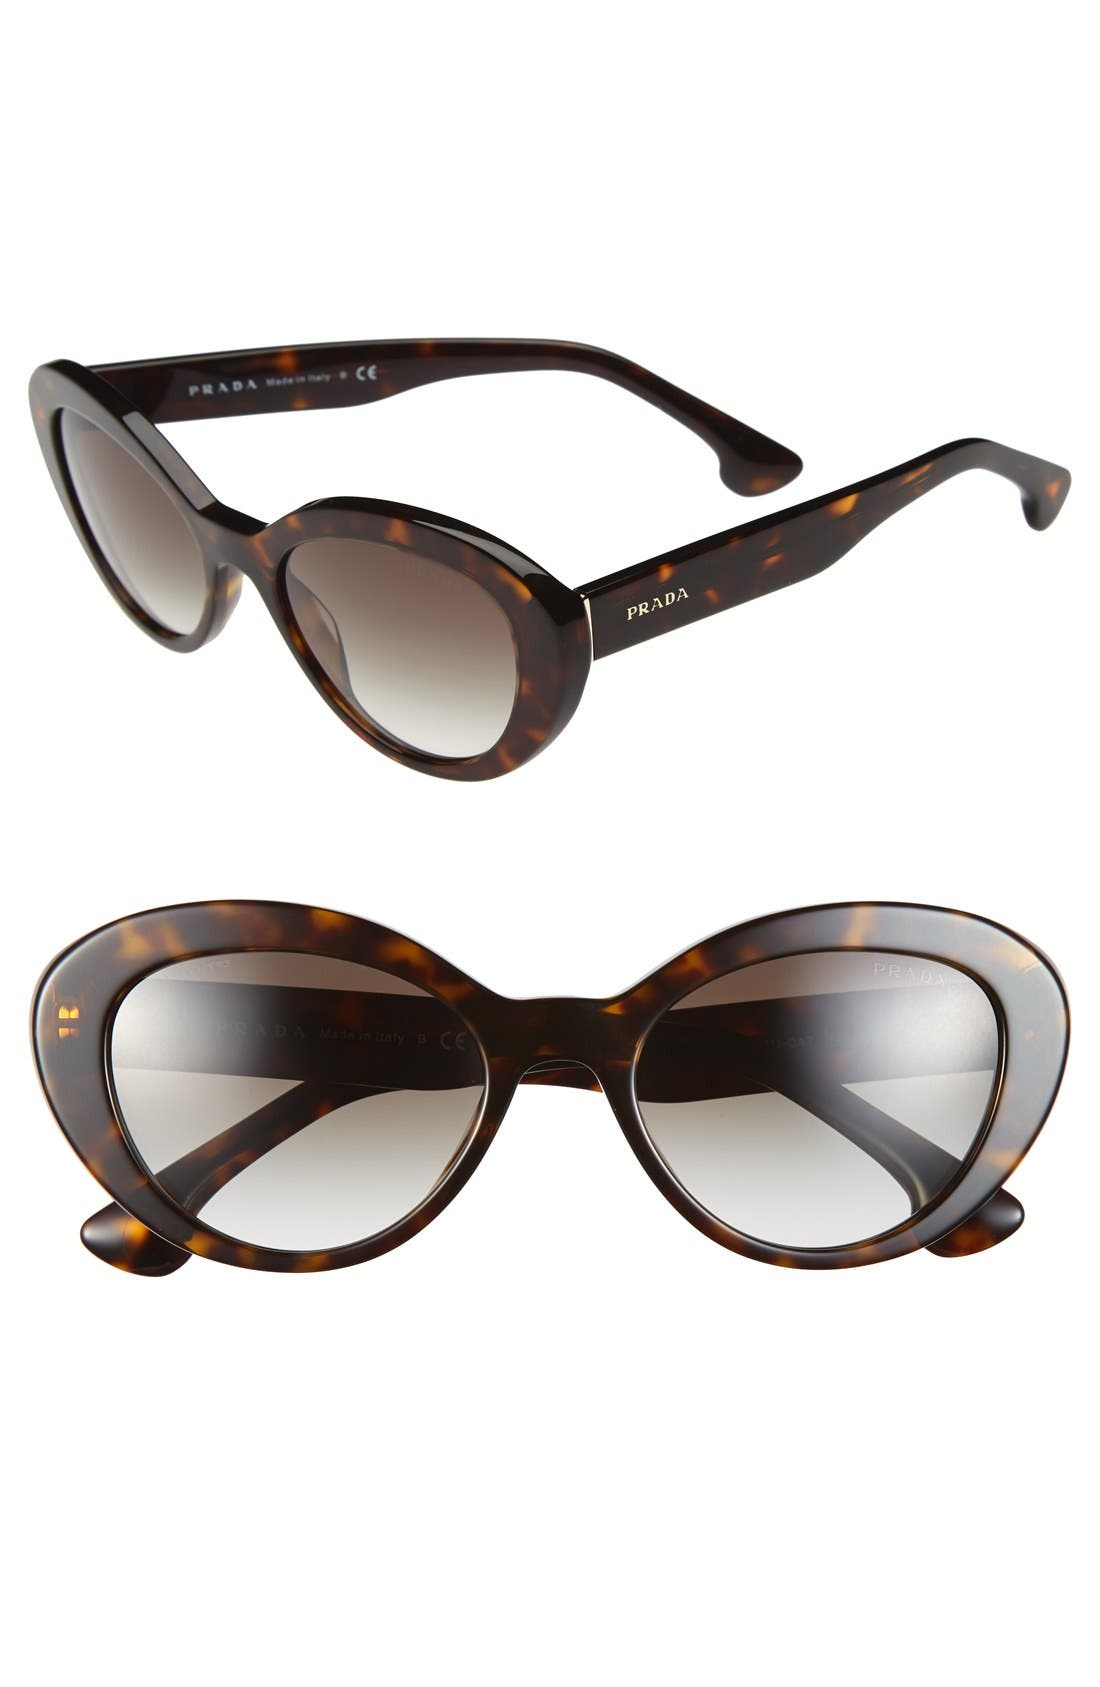 Main Image - Prada 53mm Cat Eye Sunglasses